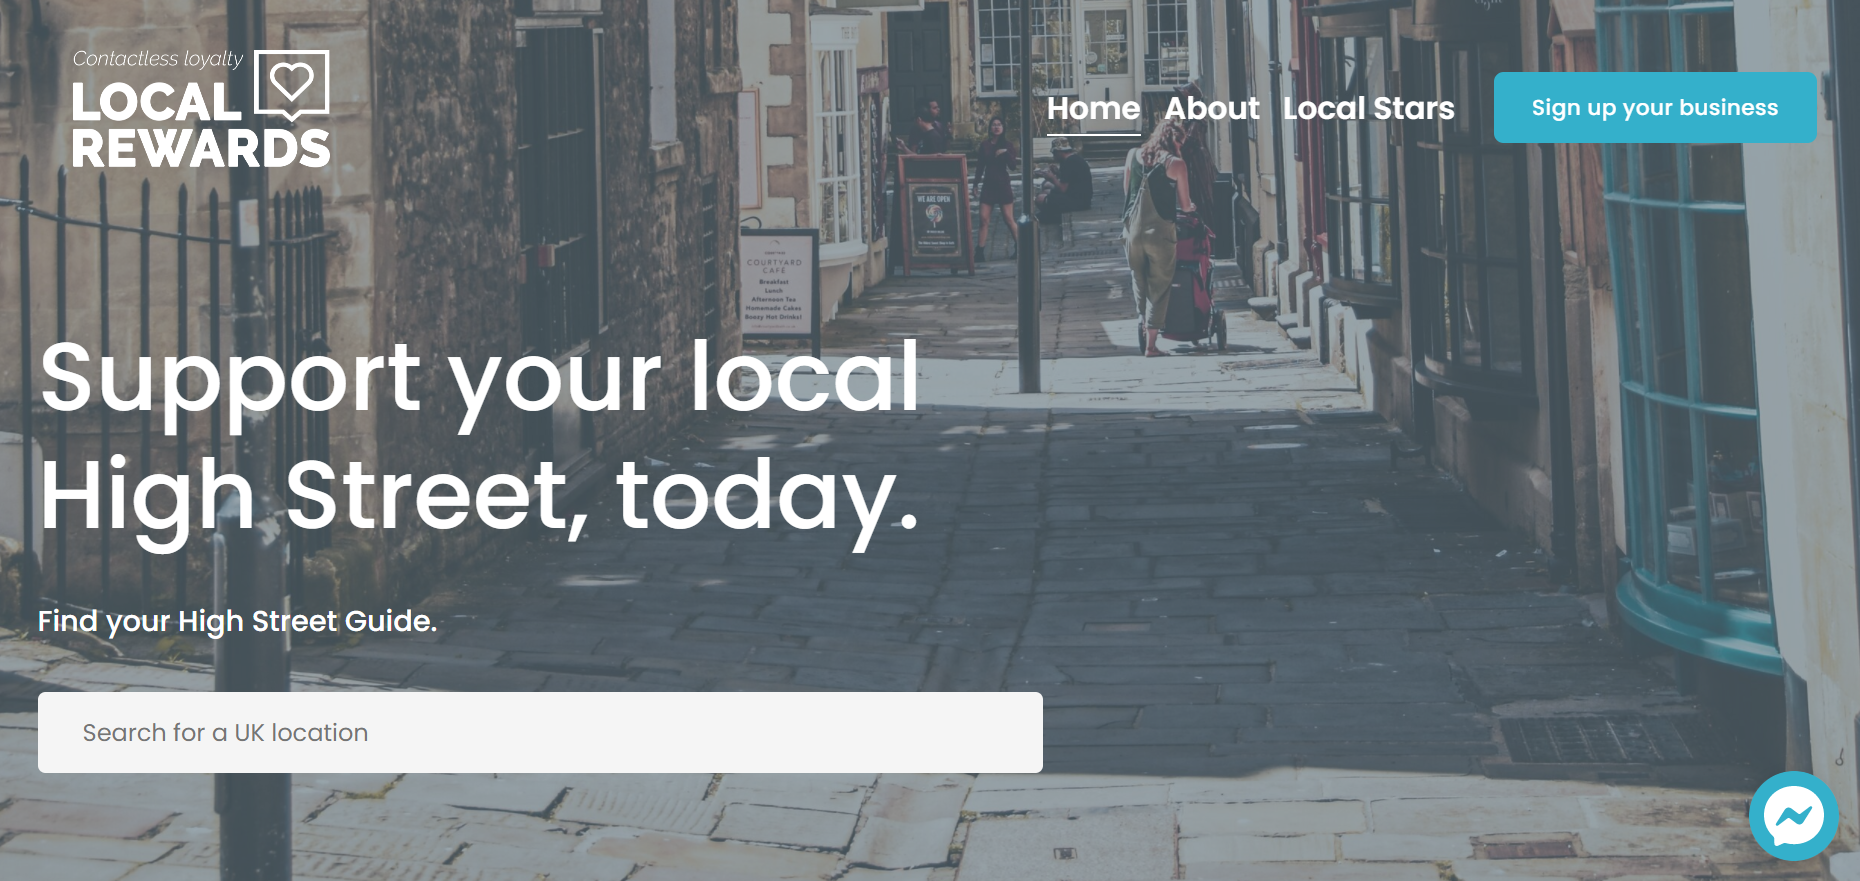 What is Local Rewards?